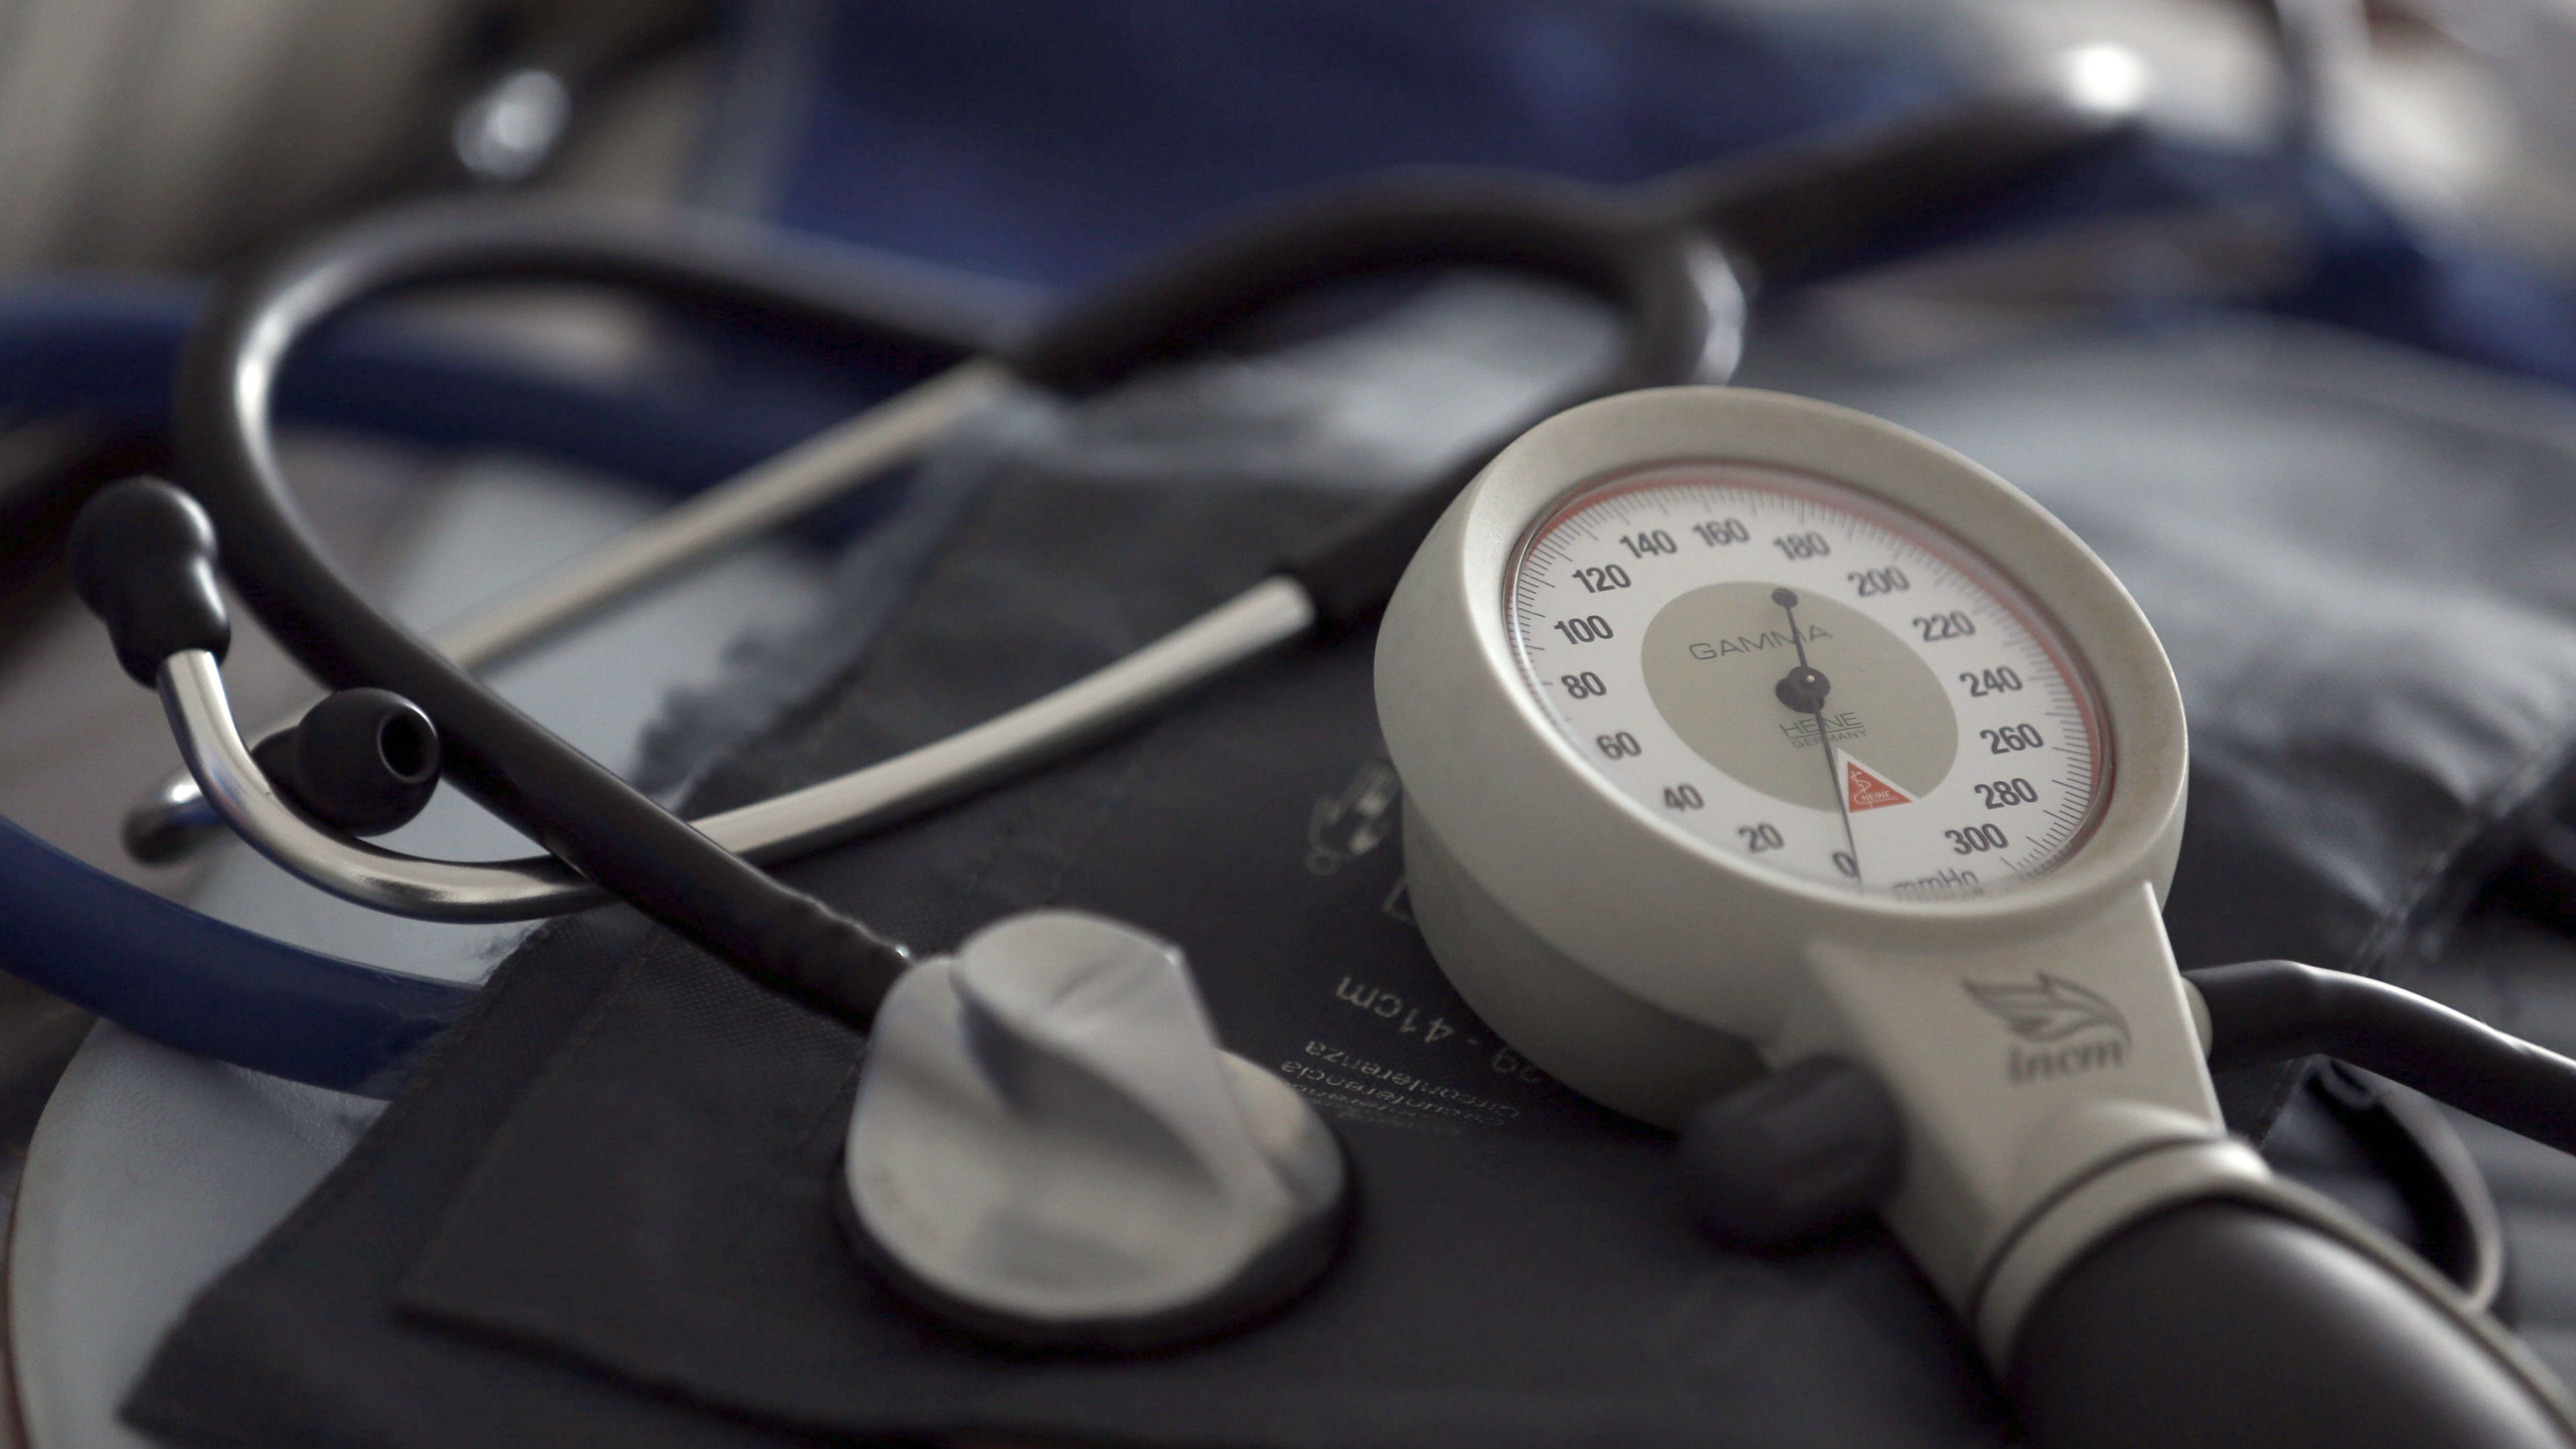 A stethoscope and blood pressure cuff on a table.